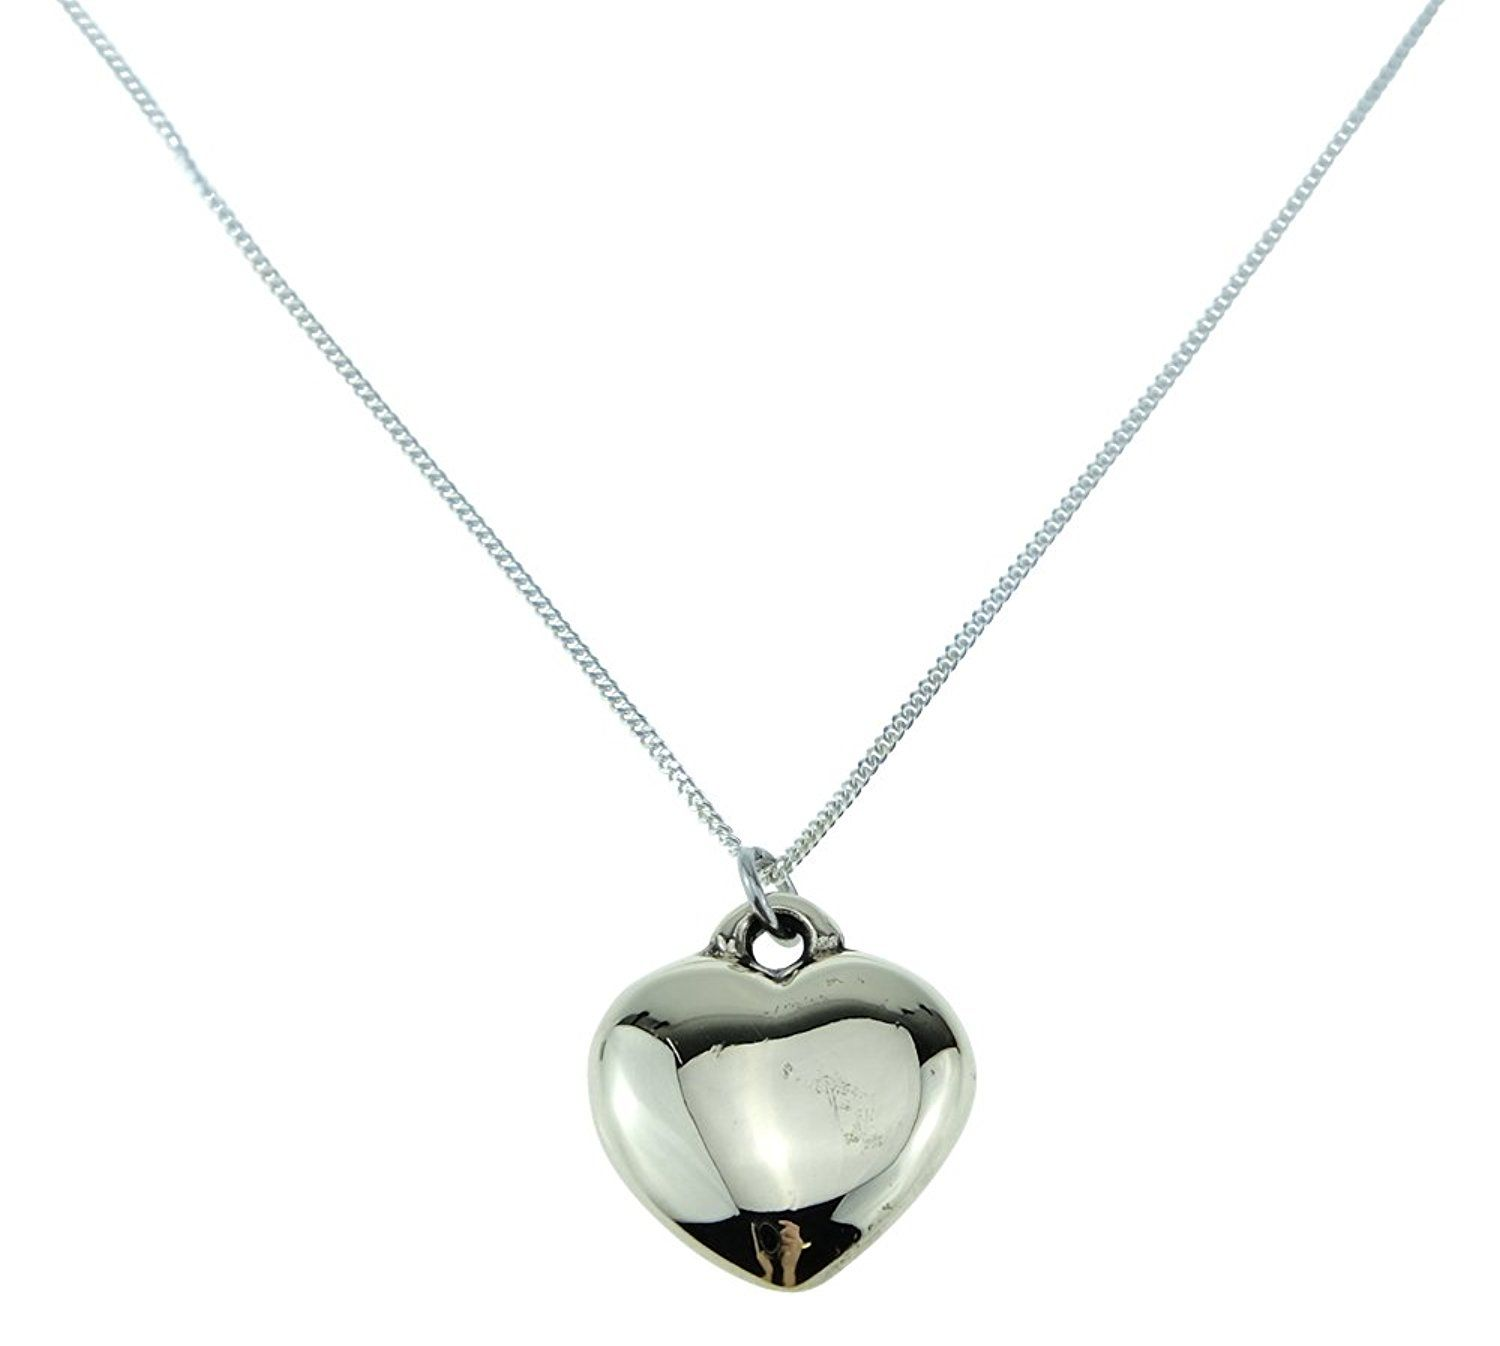 8th anniversary solid bronze polished heart pendant